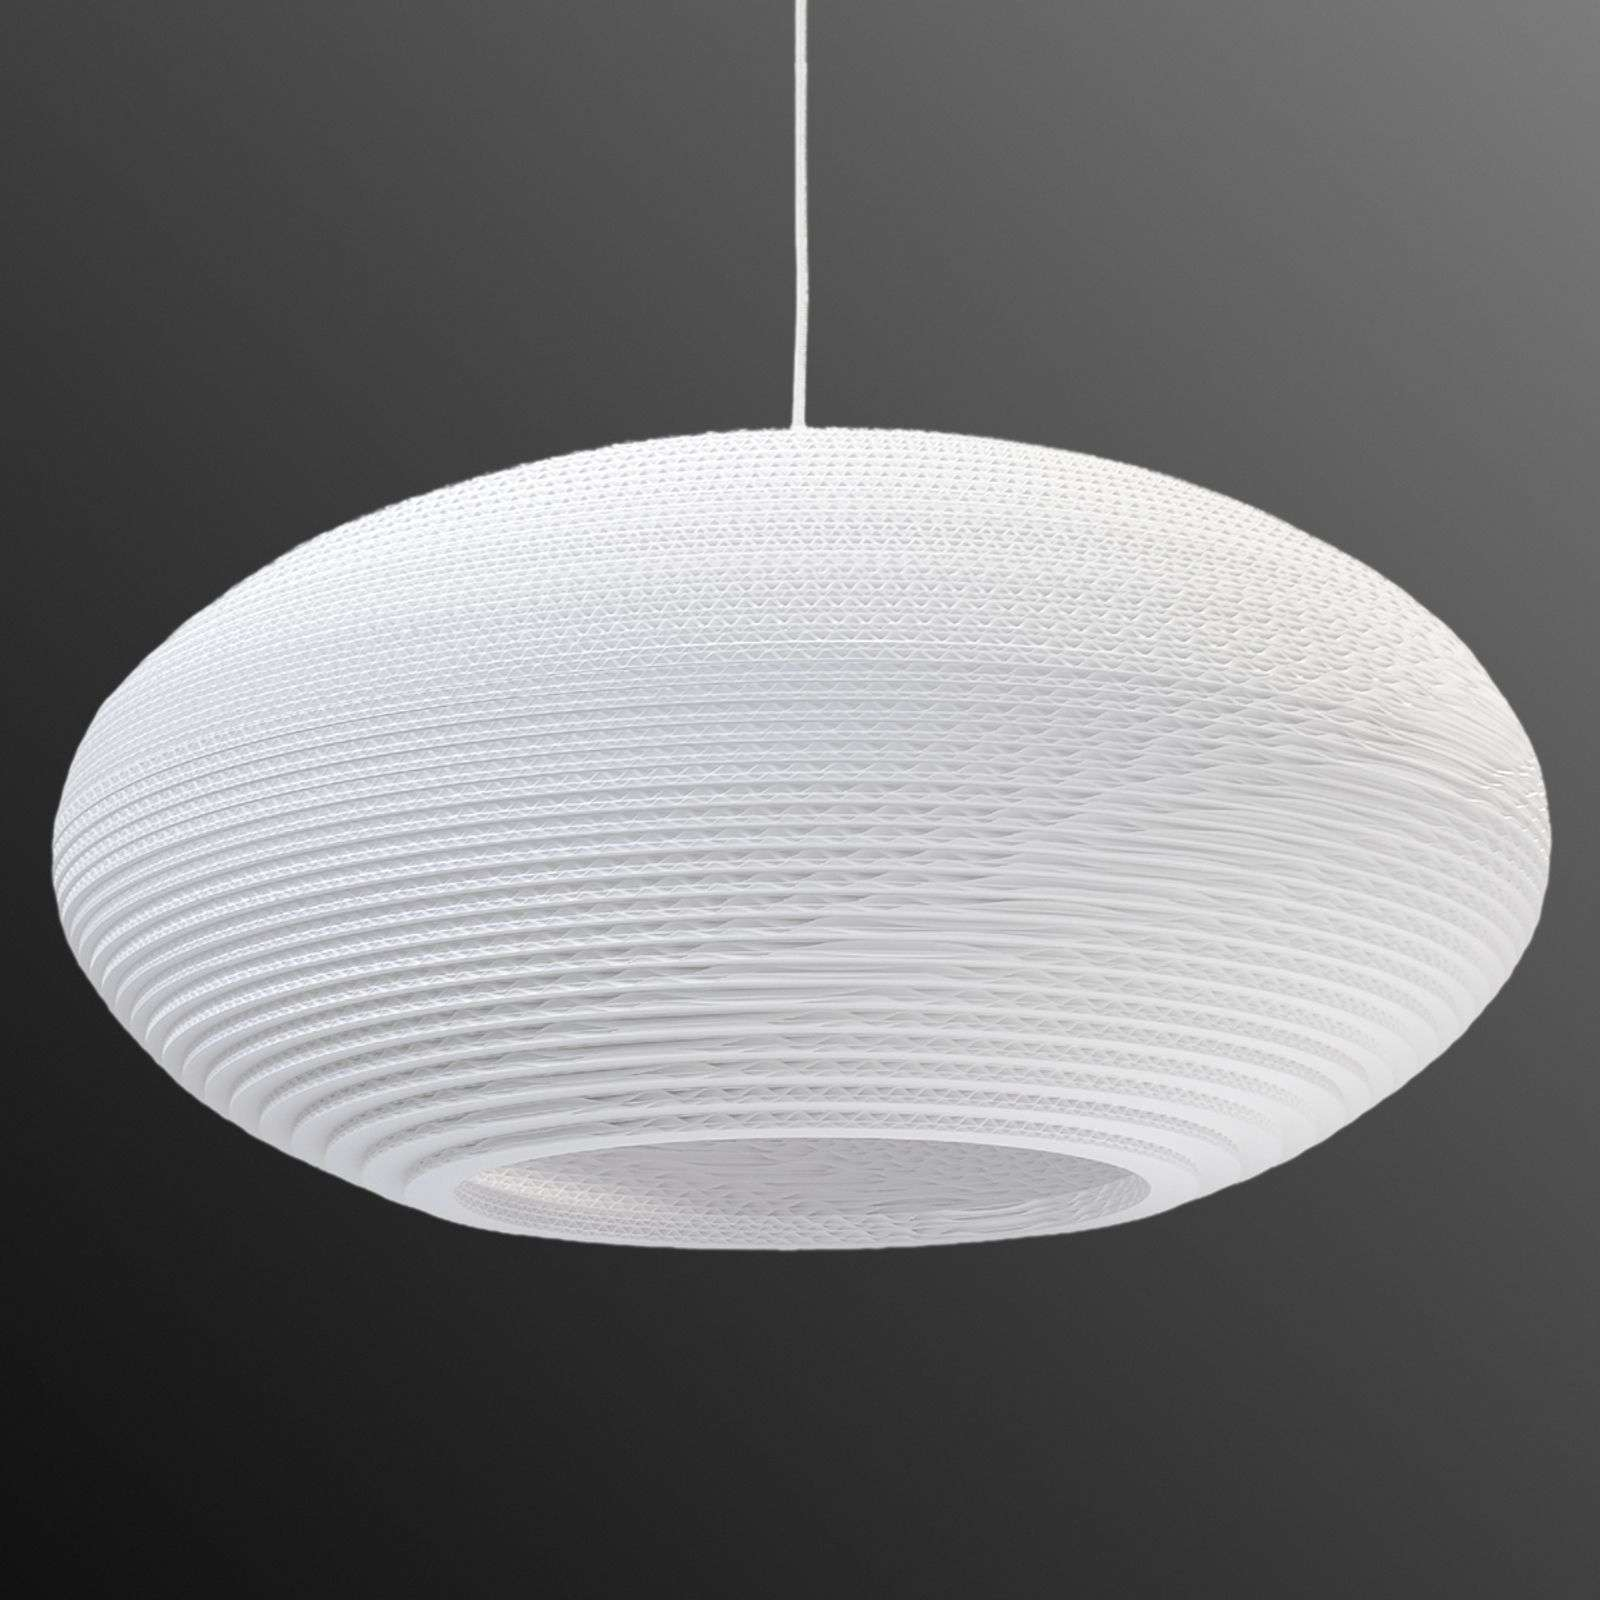 Suspension Disc blanc Ø 61 cm